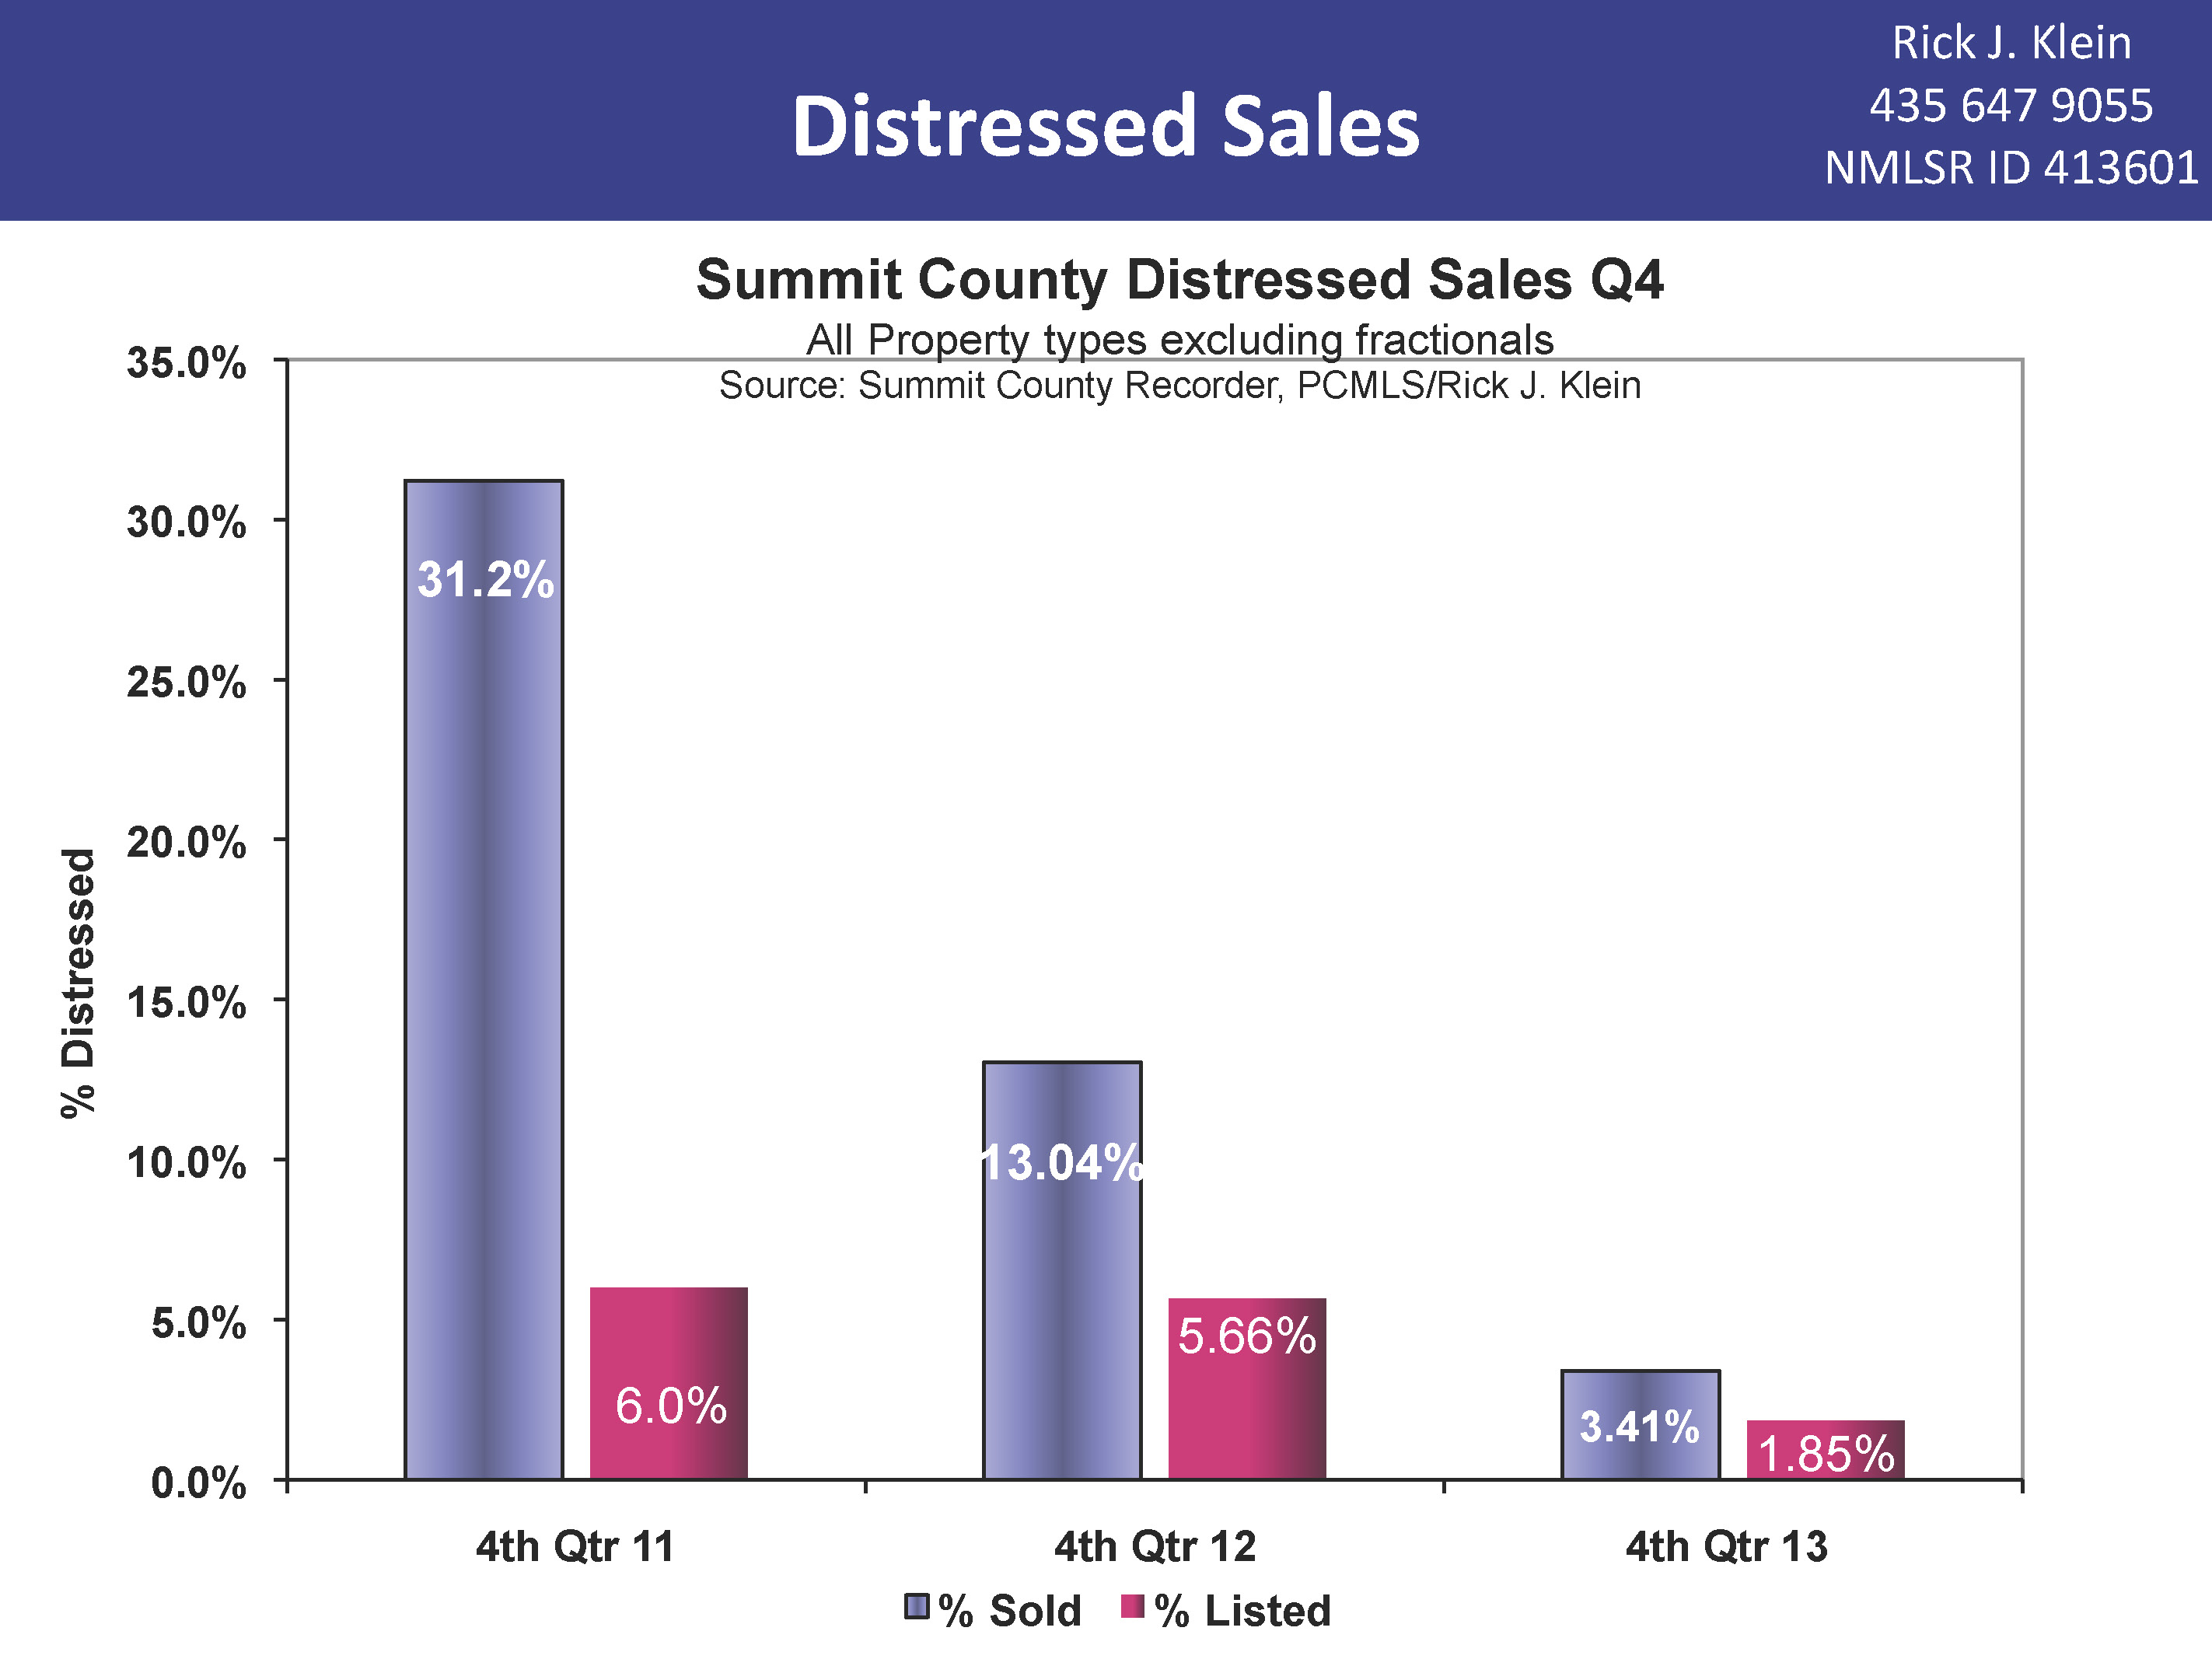 Summit County Distressed Sales Comparison